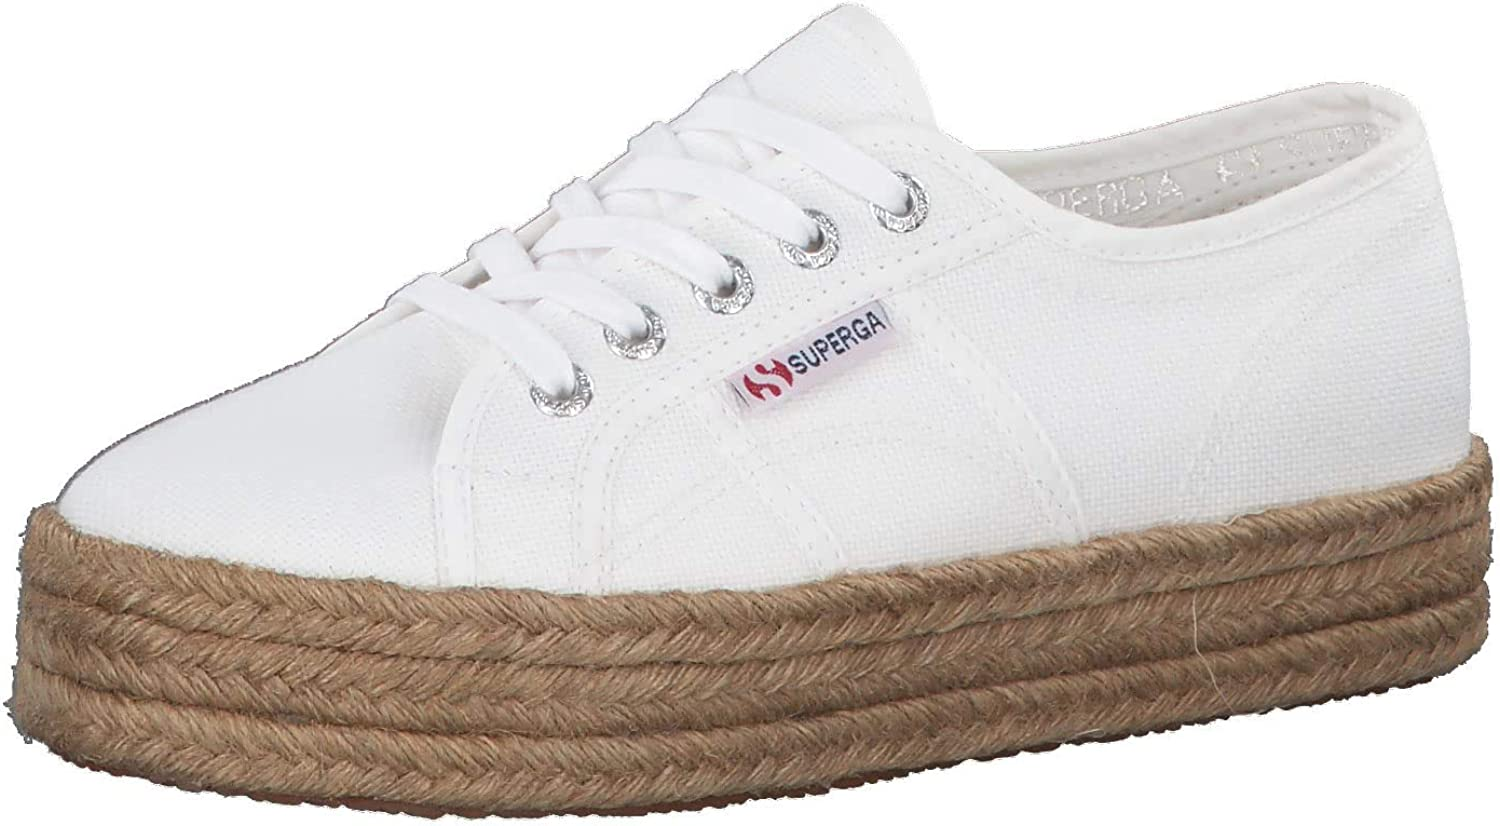 Japan Max 70% OFF Maker New Superga Women's Trainers Low